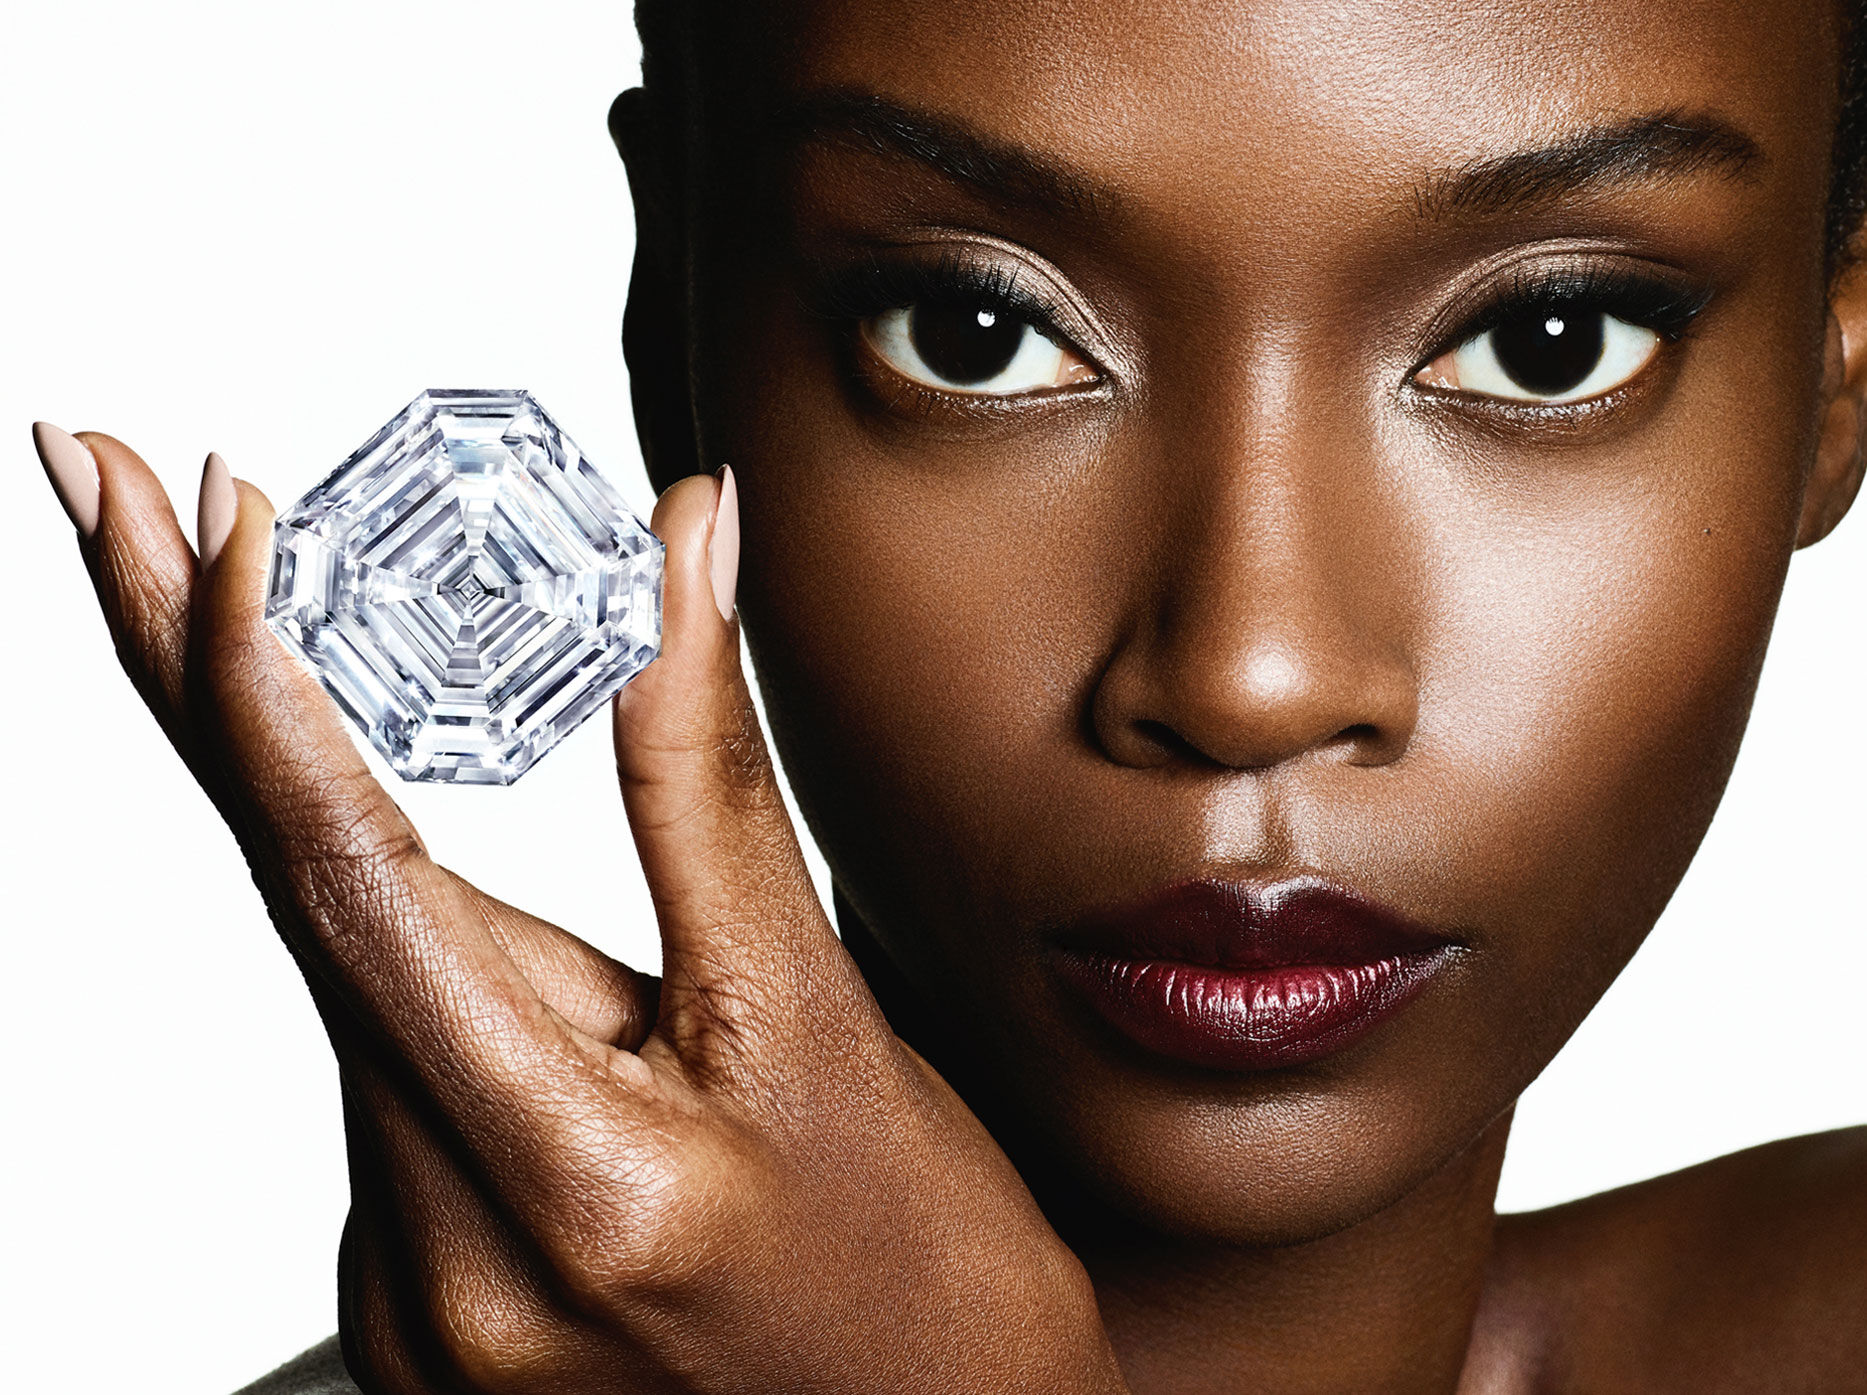 Model holding the Graff Lesedi La Rona diamond.